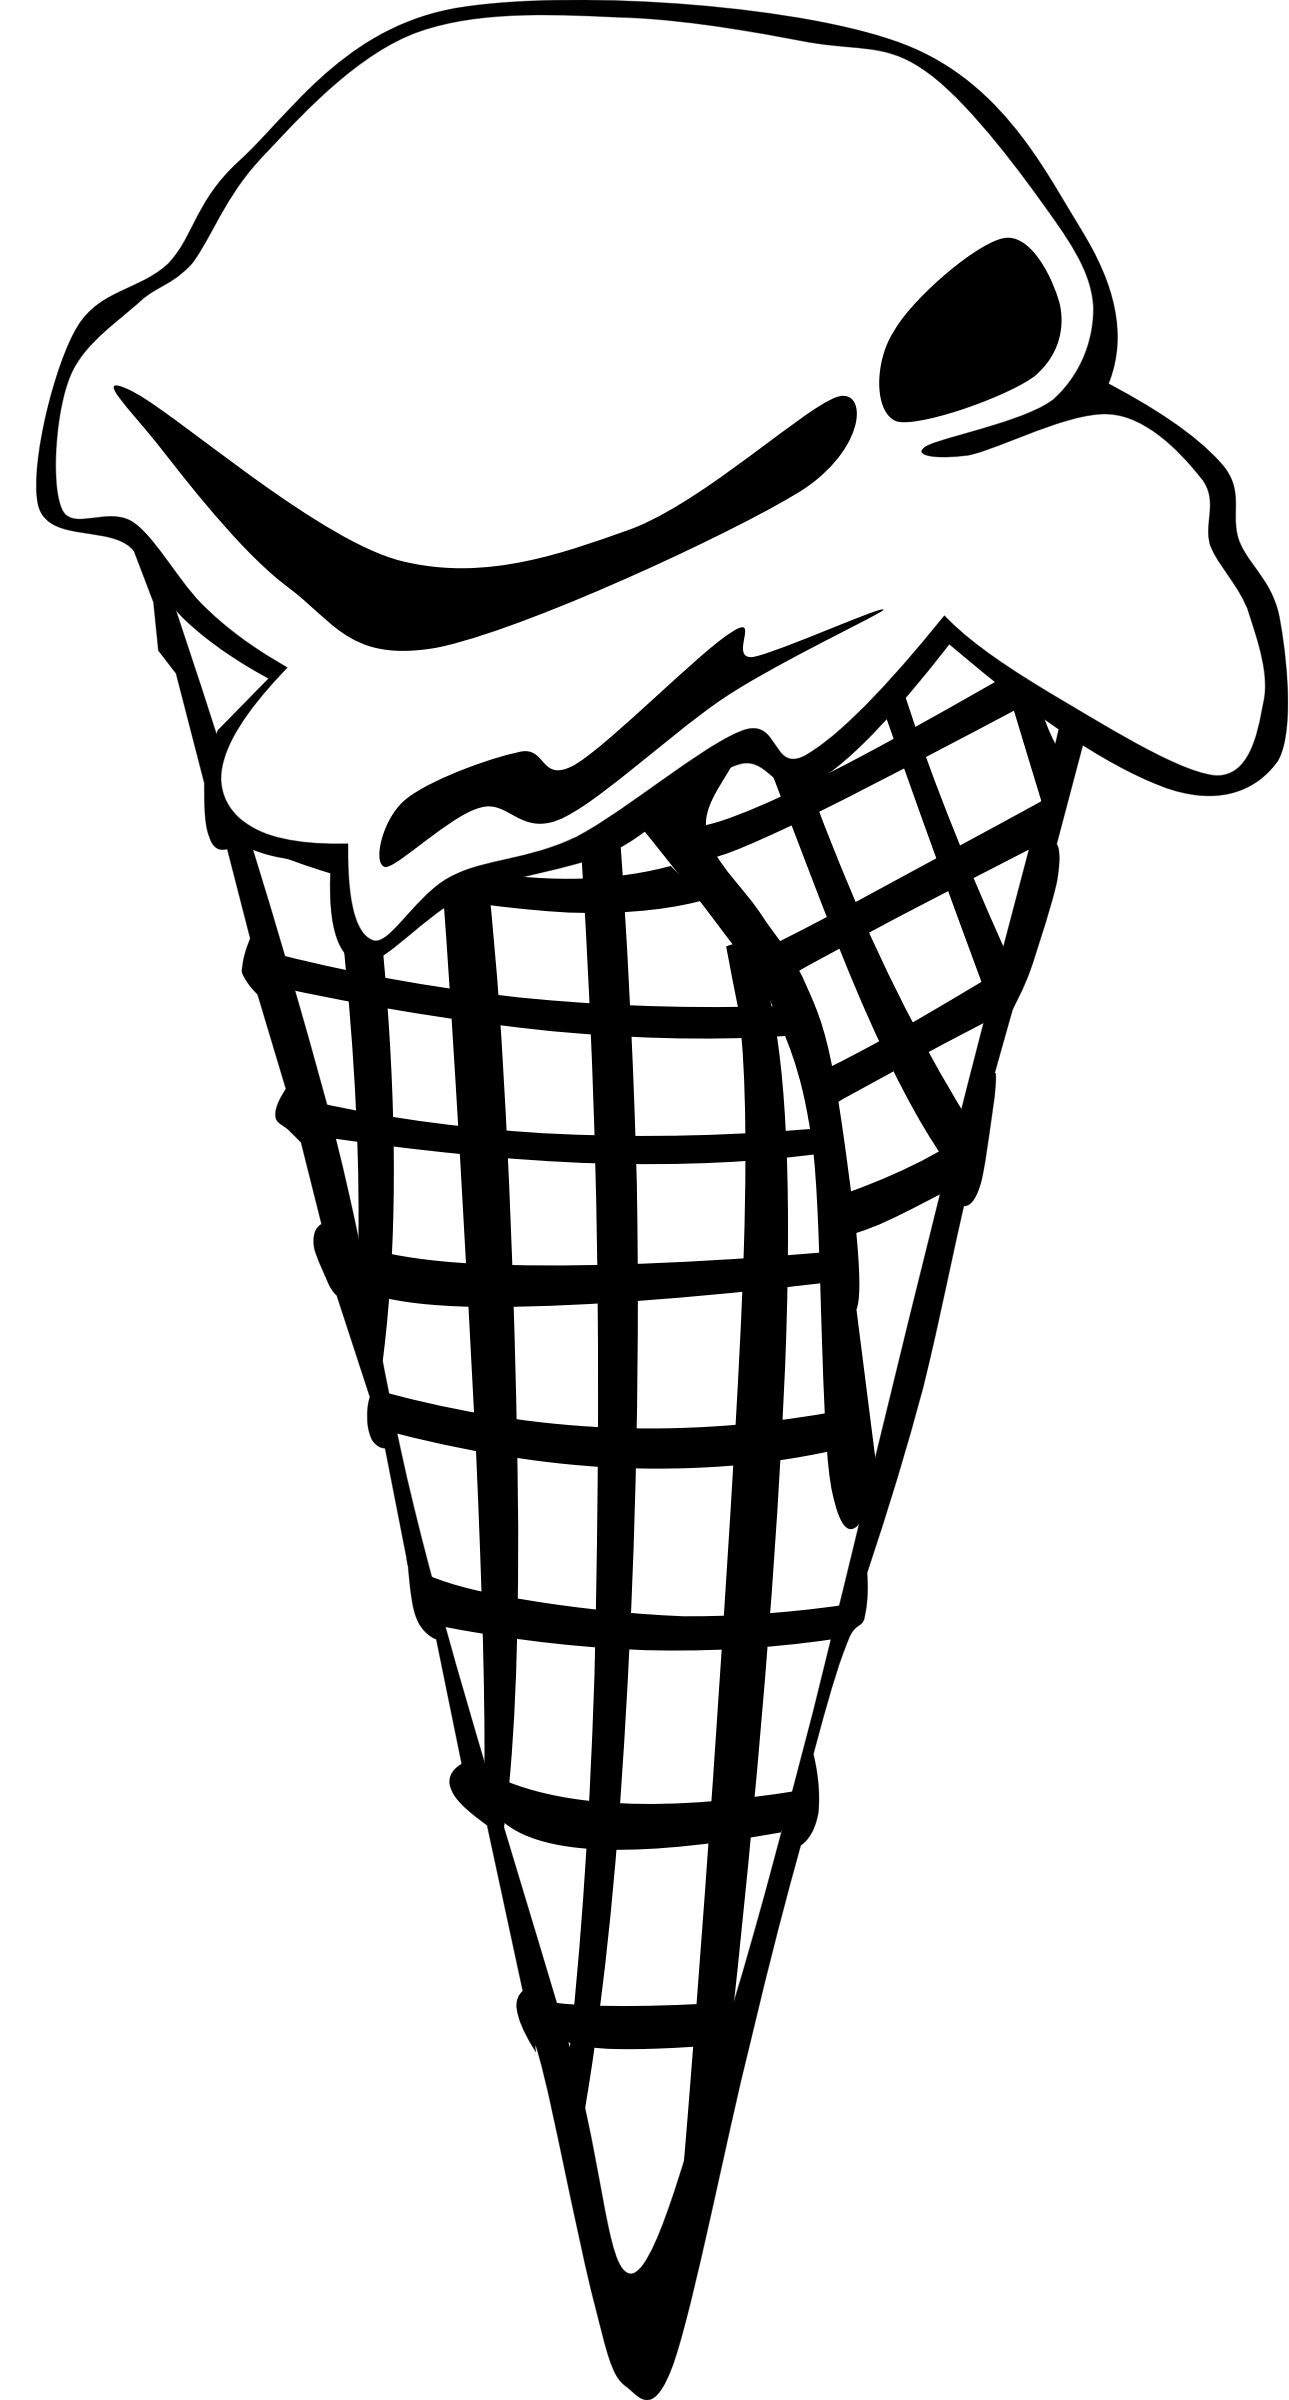 Fast food ice cream. Desserts clipart black and white